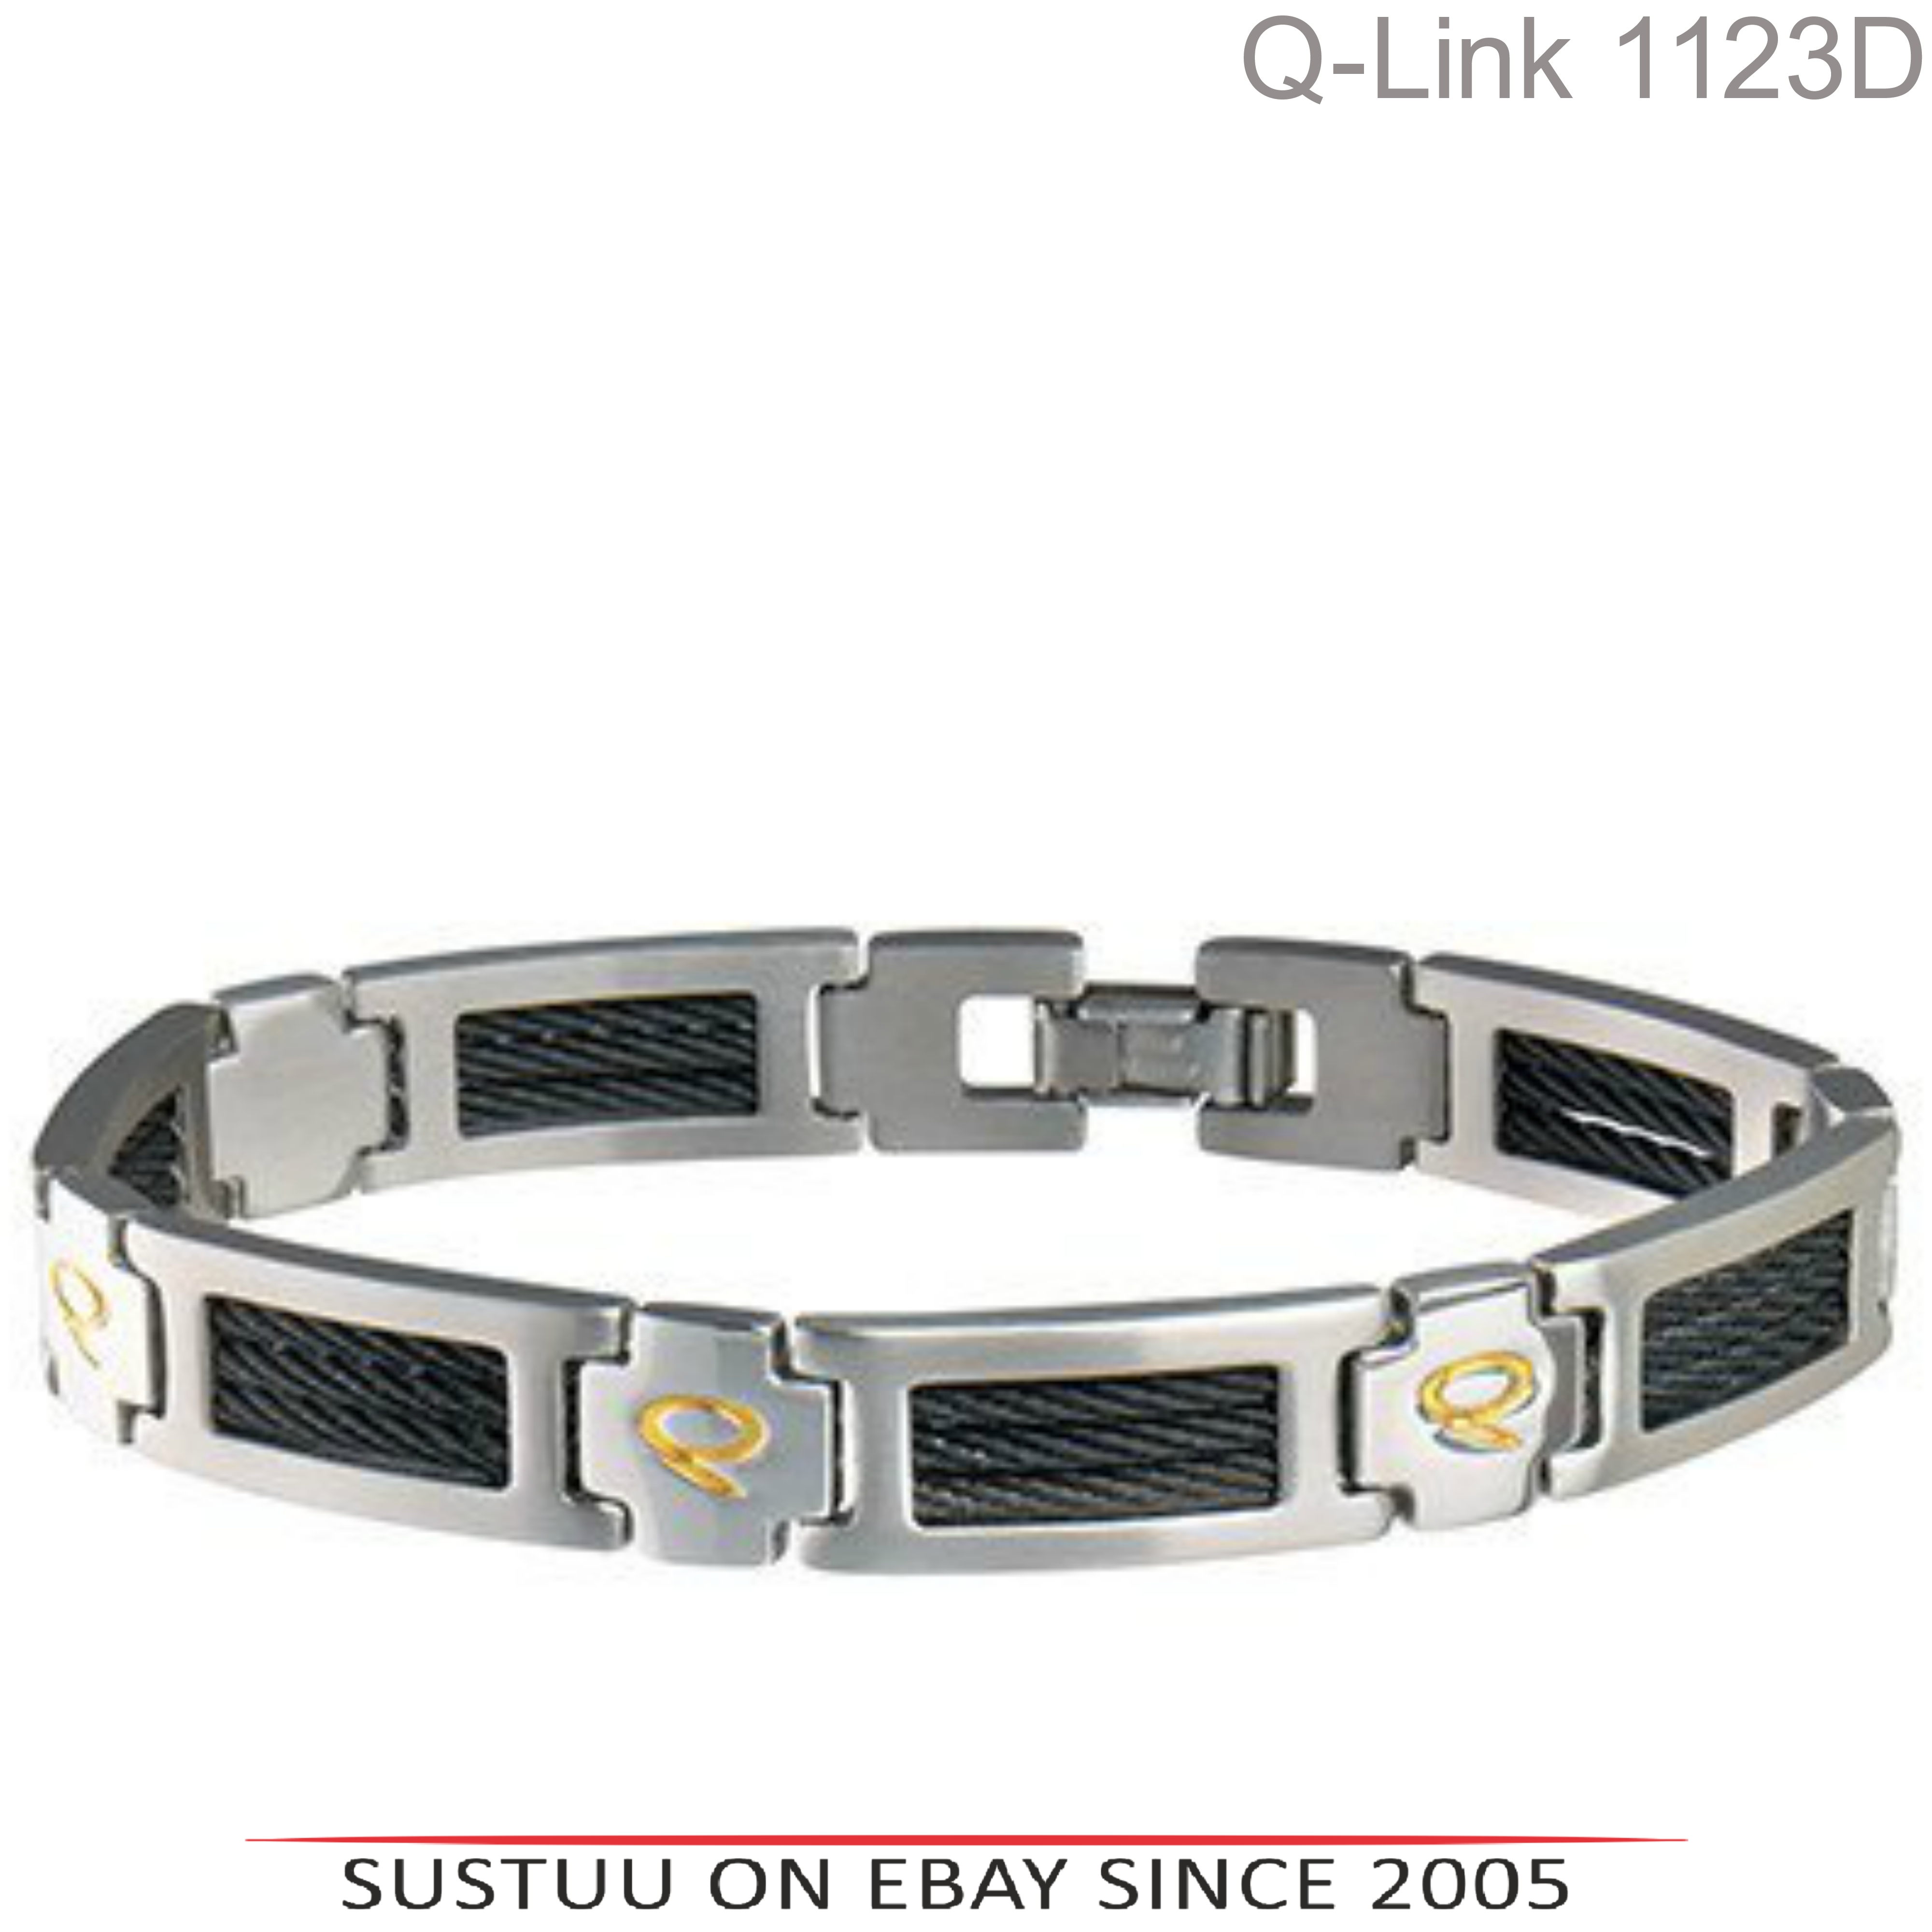 Q-Link Stainless Steel Brushed SRT-3 Executive Mens Bracelet|Well Being|-XLarge